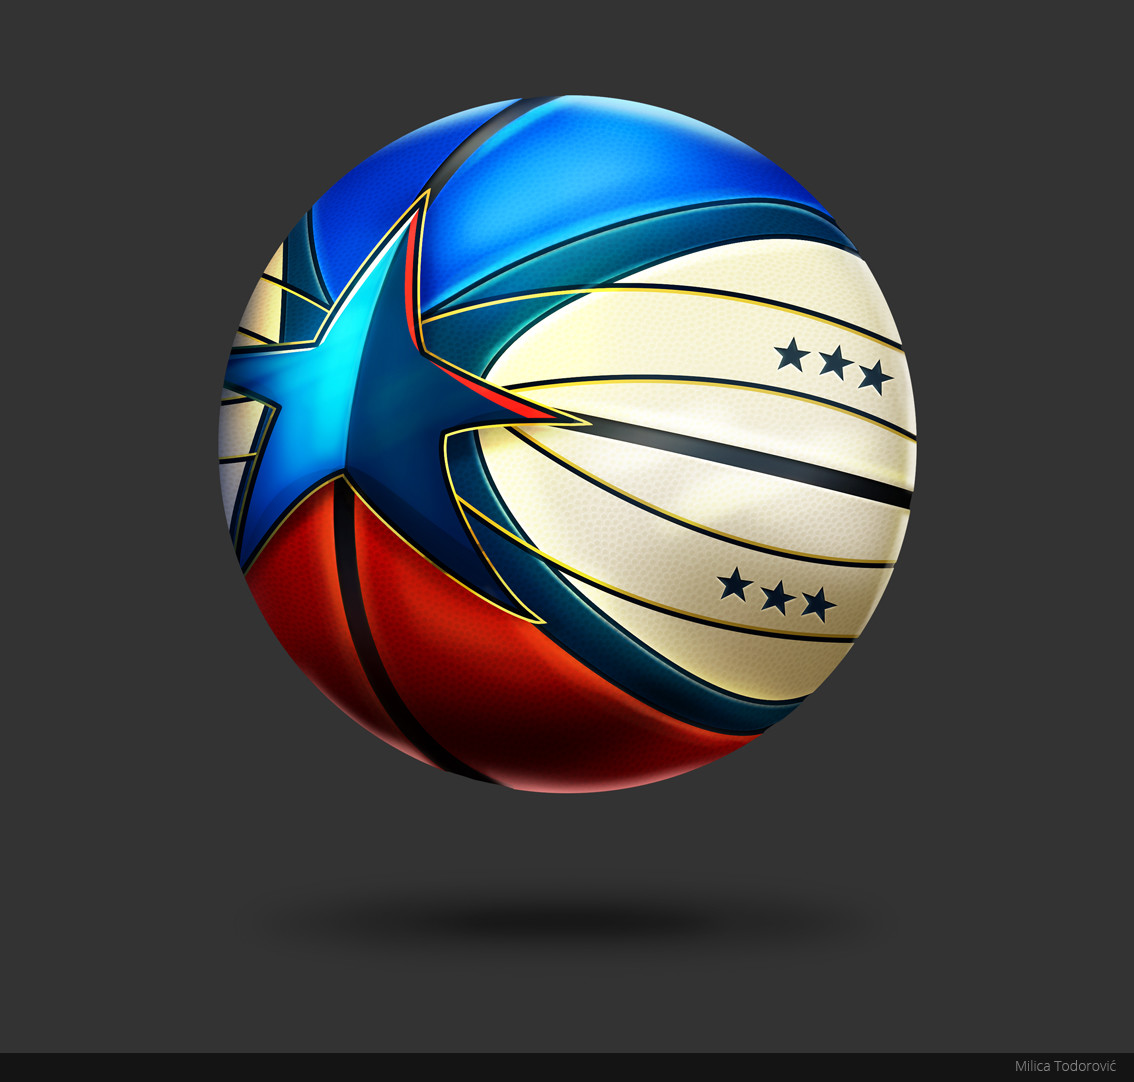 Milica todorovic personal test basketball ingame icon